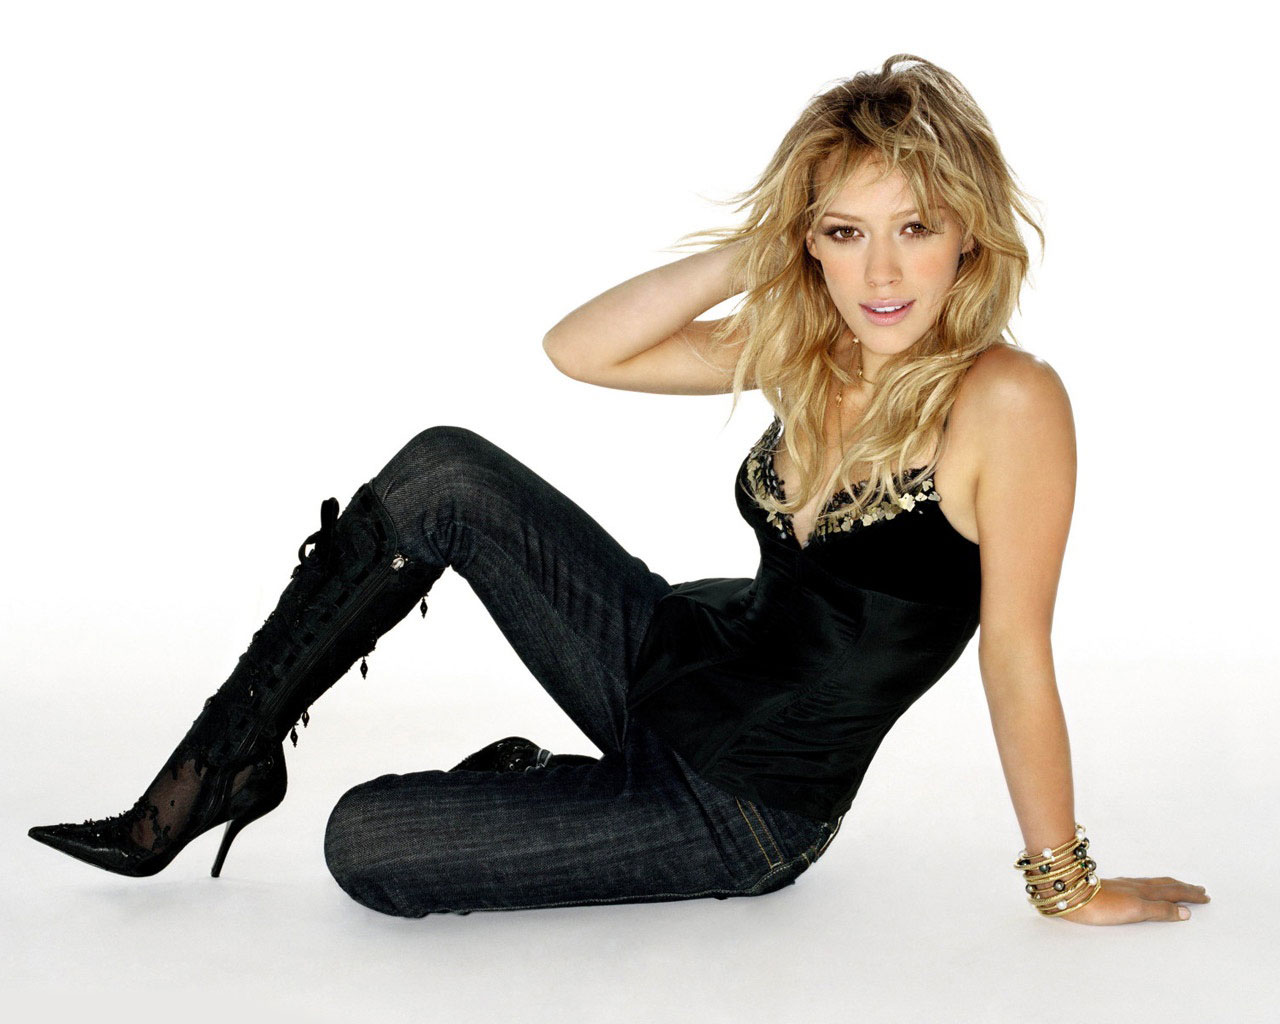 Hot And Sexy Hilary Duff Hd Wallpapers 2015 - All Hd Wallpapers-5536